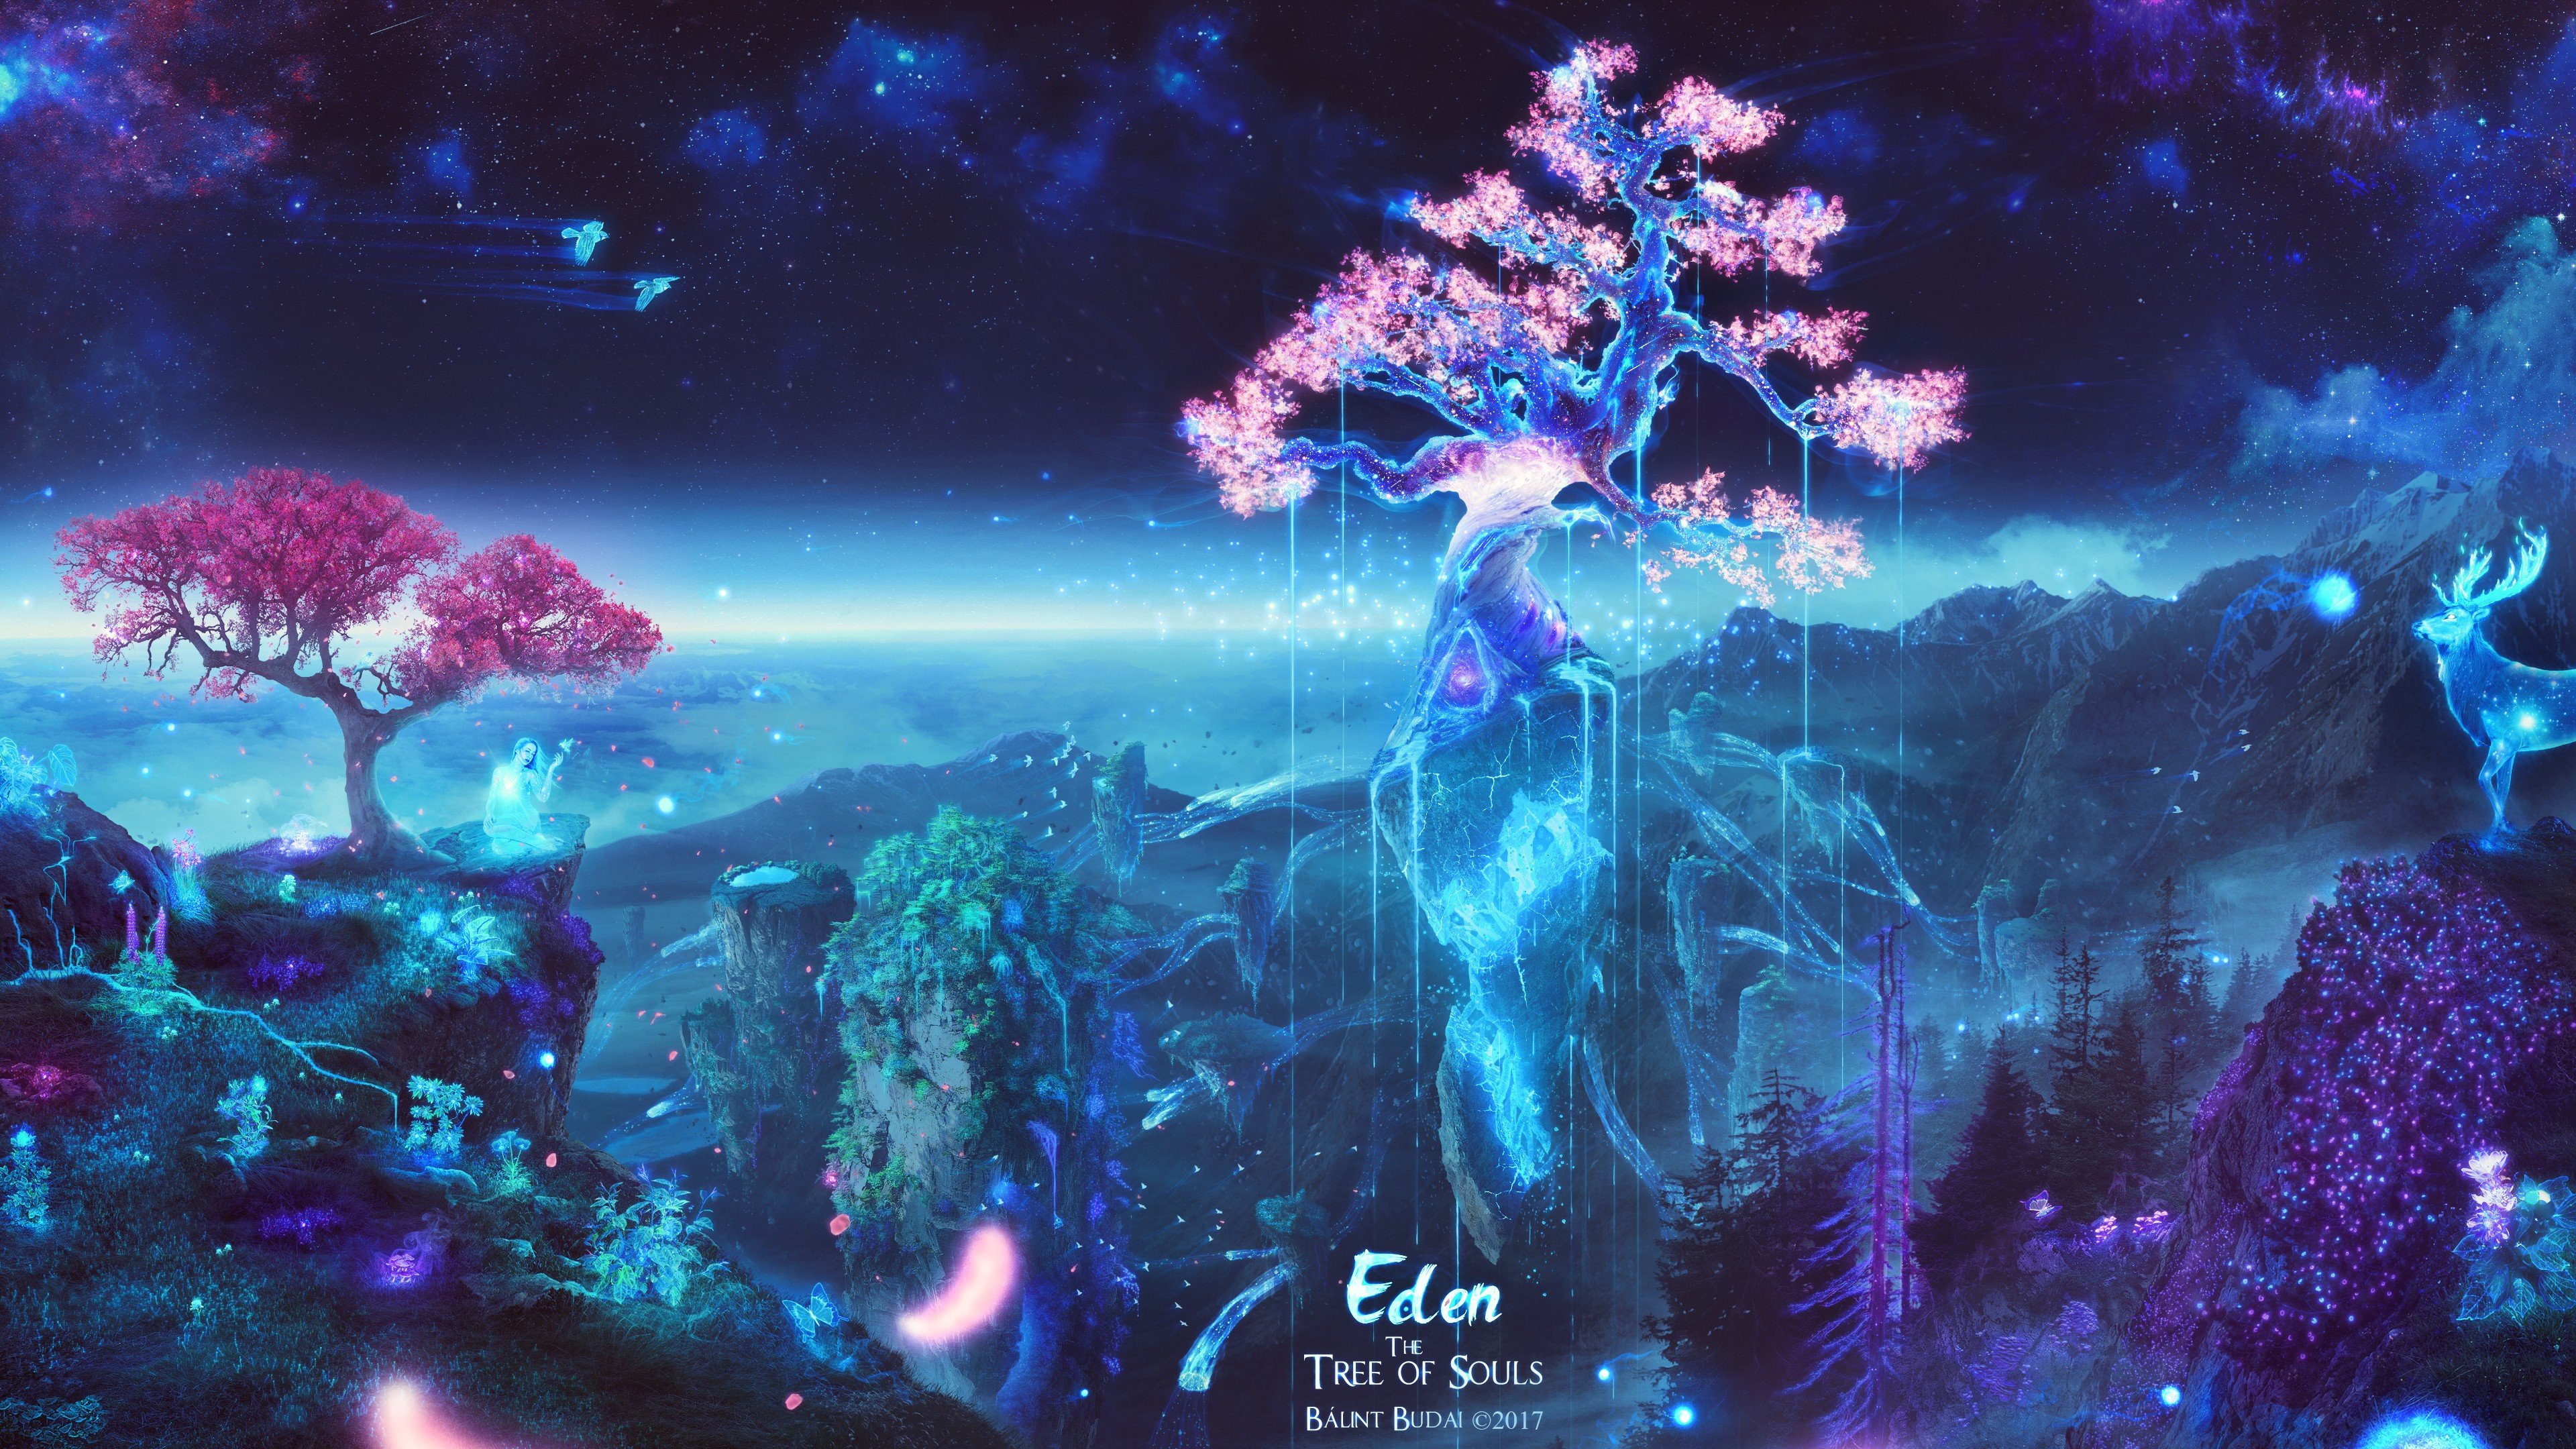 General 3840x2160 trees space galaxy souls sakura (tree) deer butterfly birds fantasy art Eden digital art nature sky cyan Bálint Budai